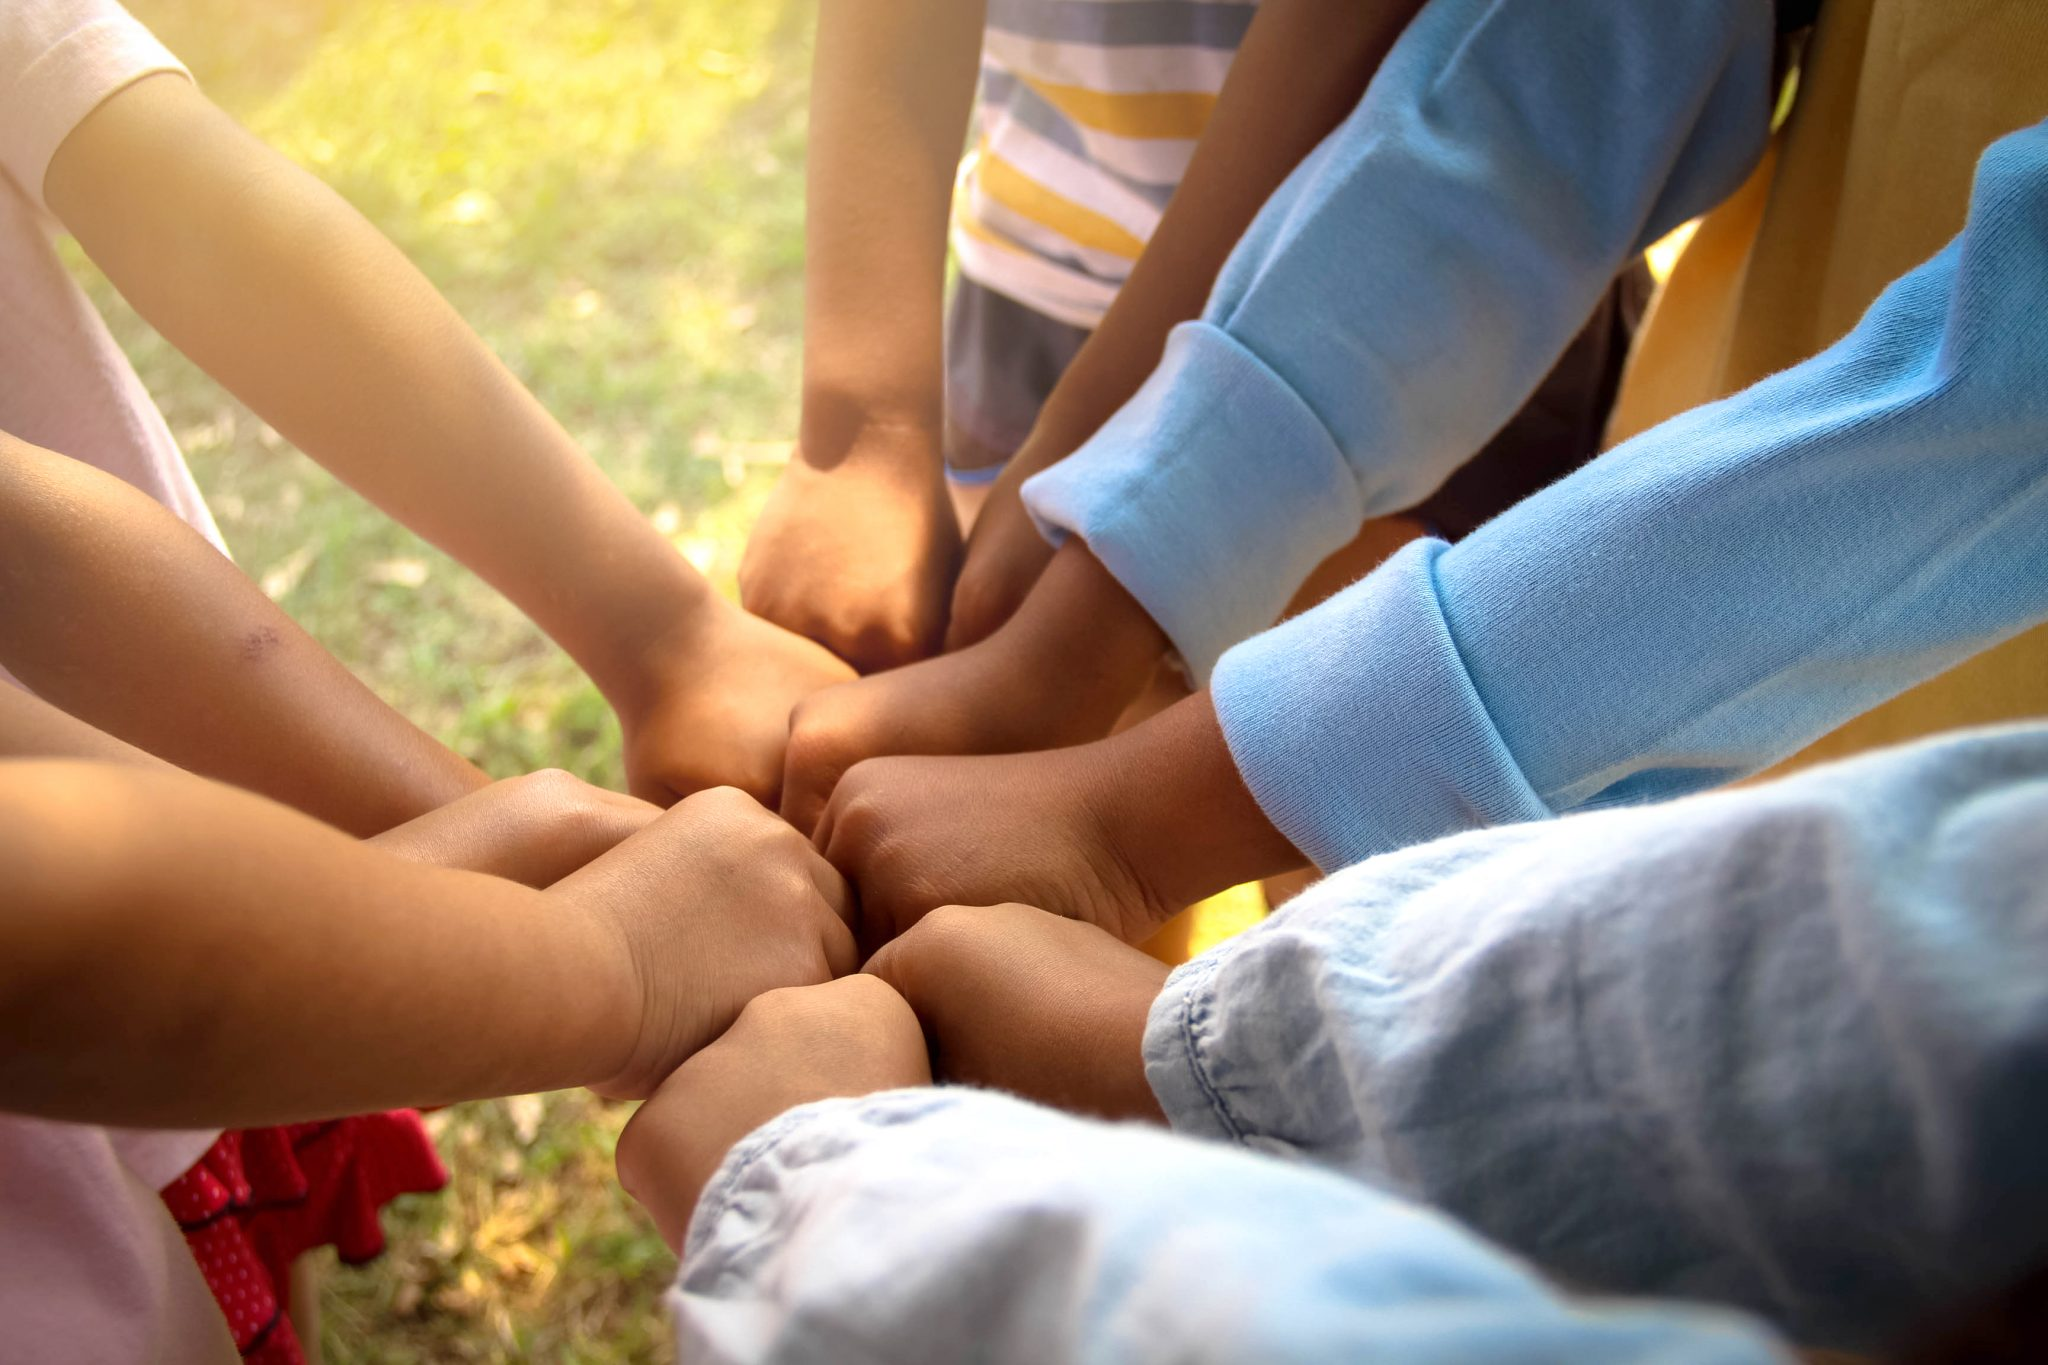 Addressing Race & Political Events in K-12 Schools